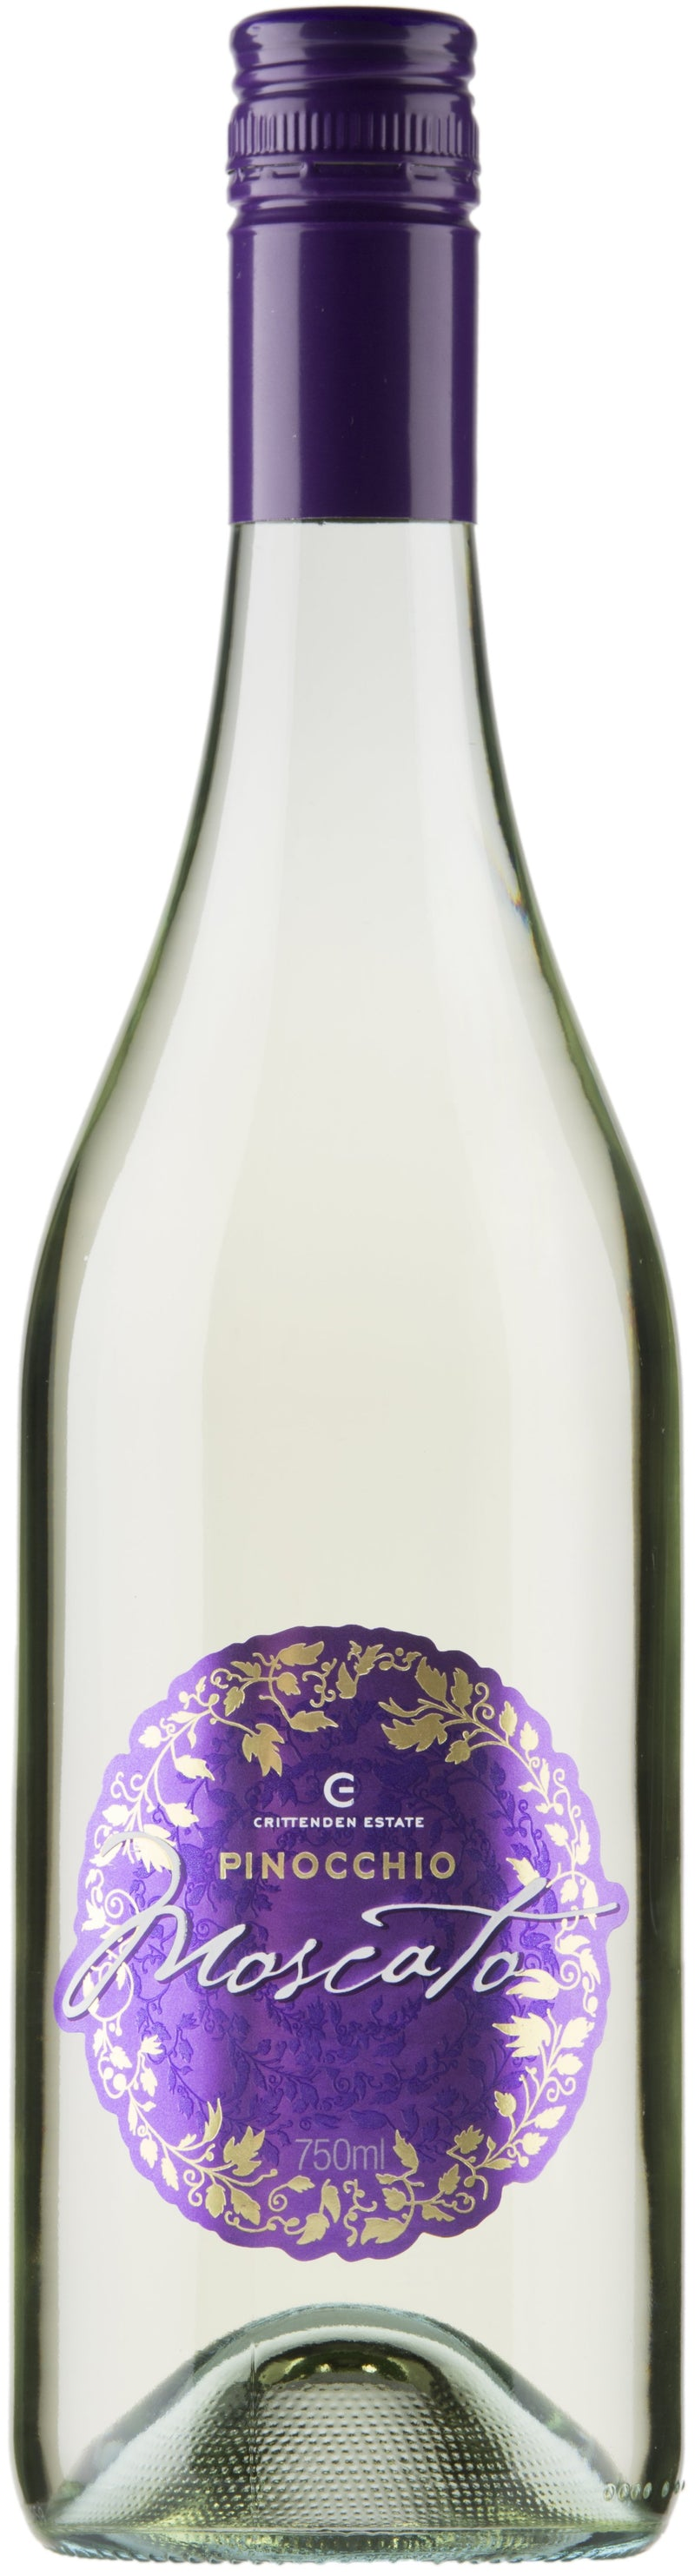 Crittenden Wines-Crittenden Wines Pinocchio Moscato-Pubble Alcohol Delivery